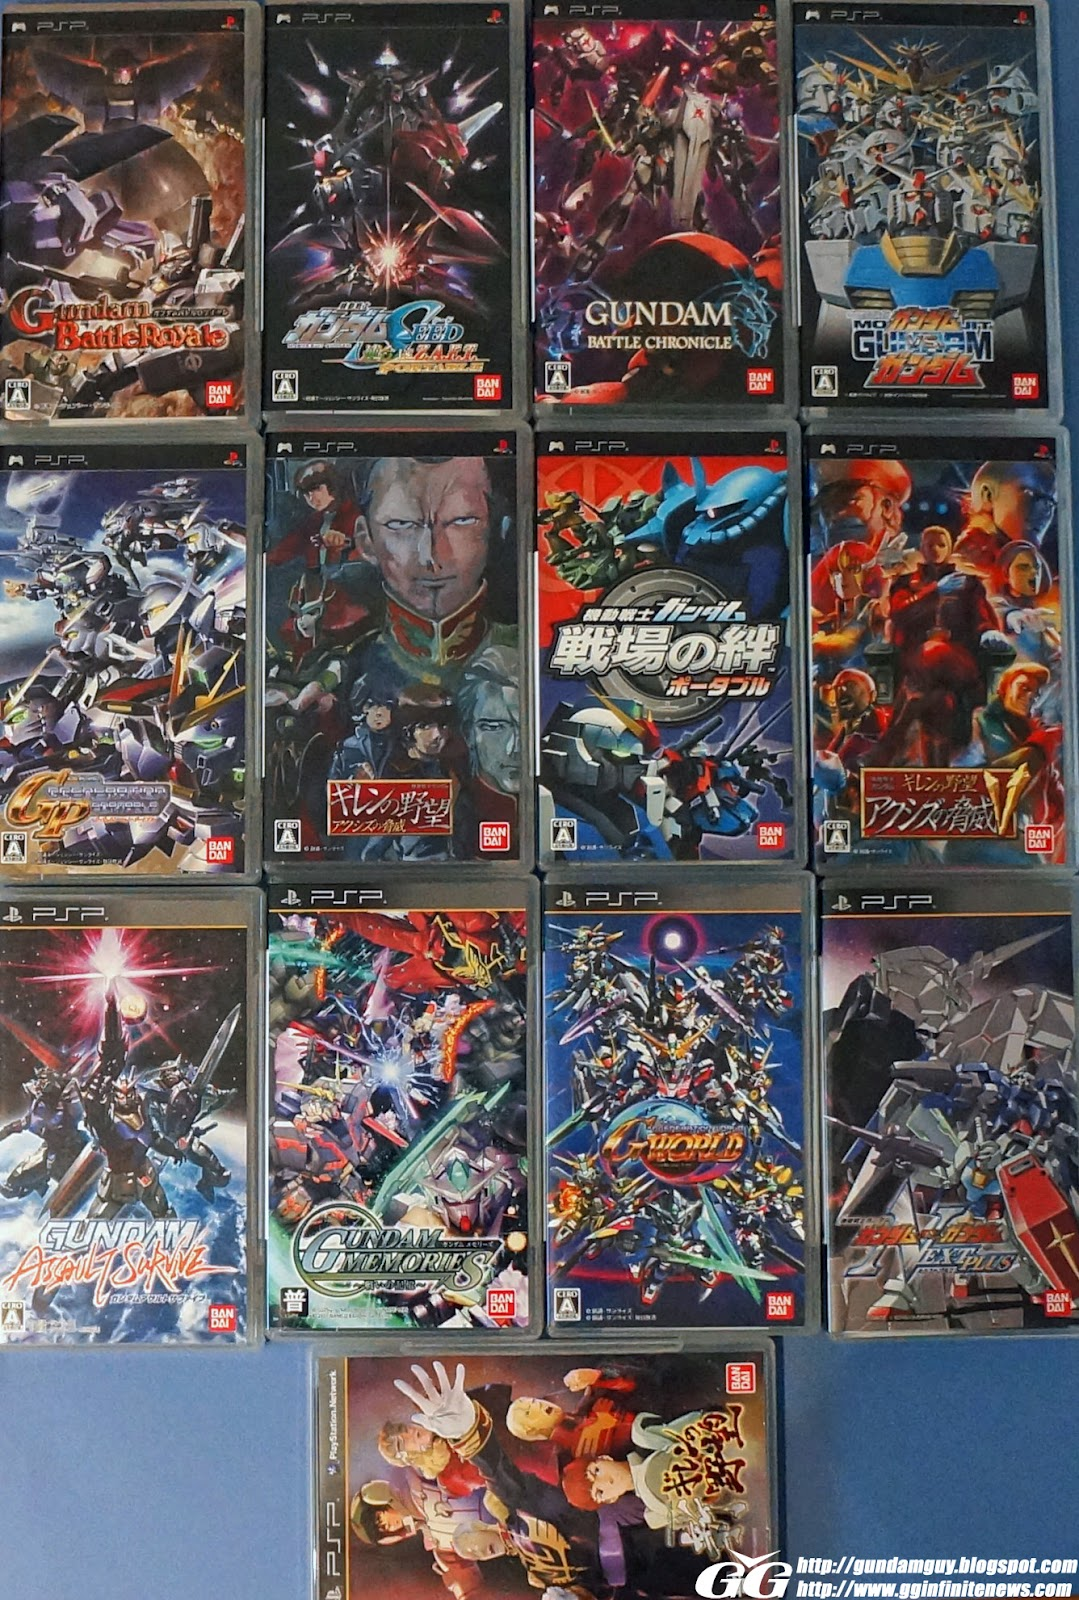 gundam guy: gundam game collection - my collection ps2/psp/ps3